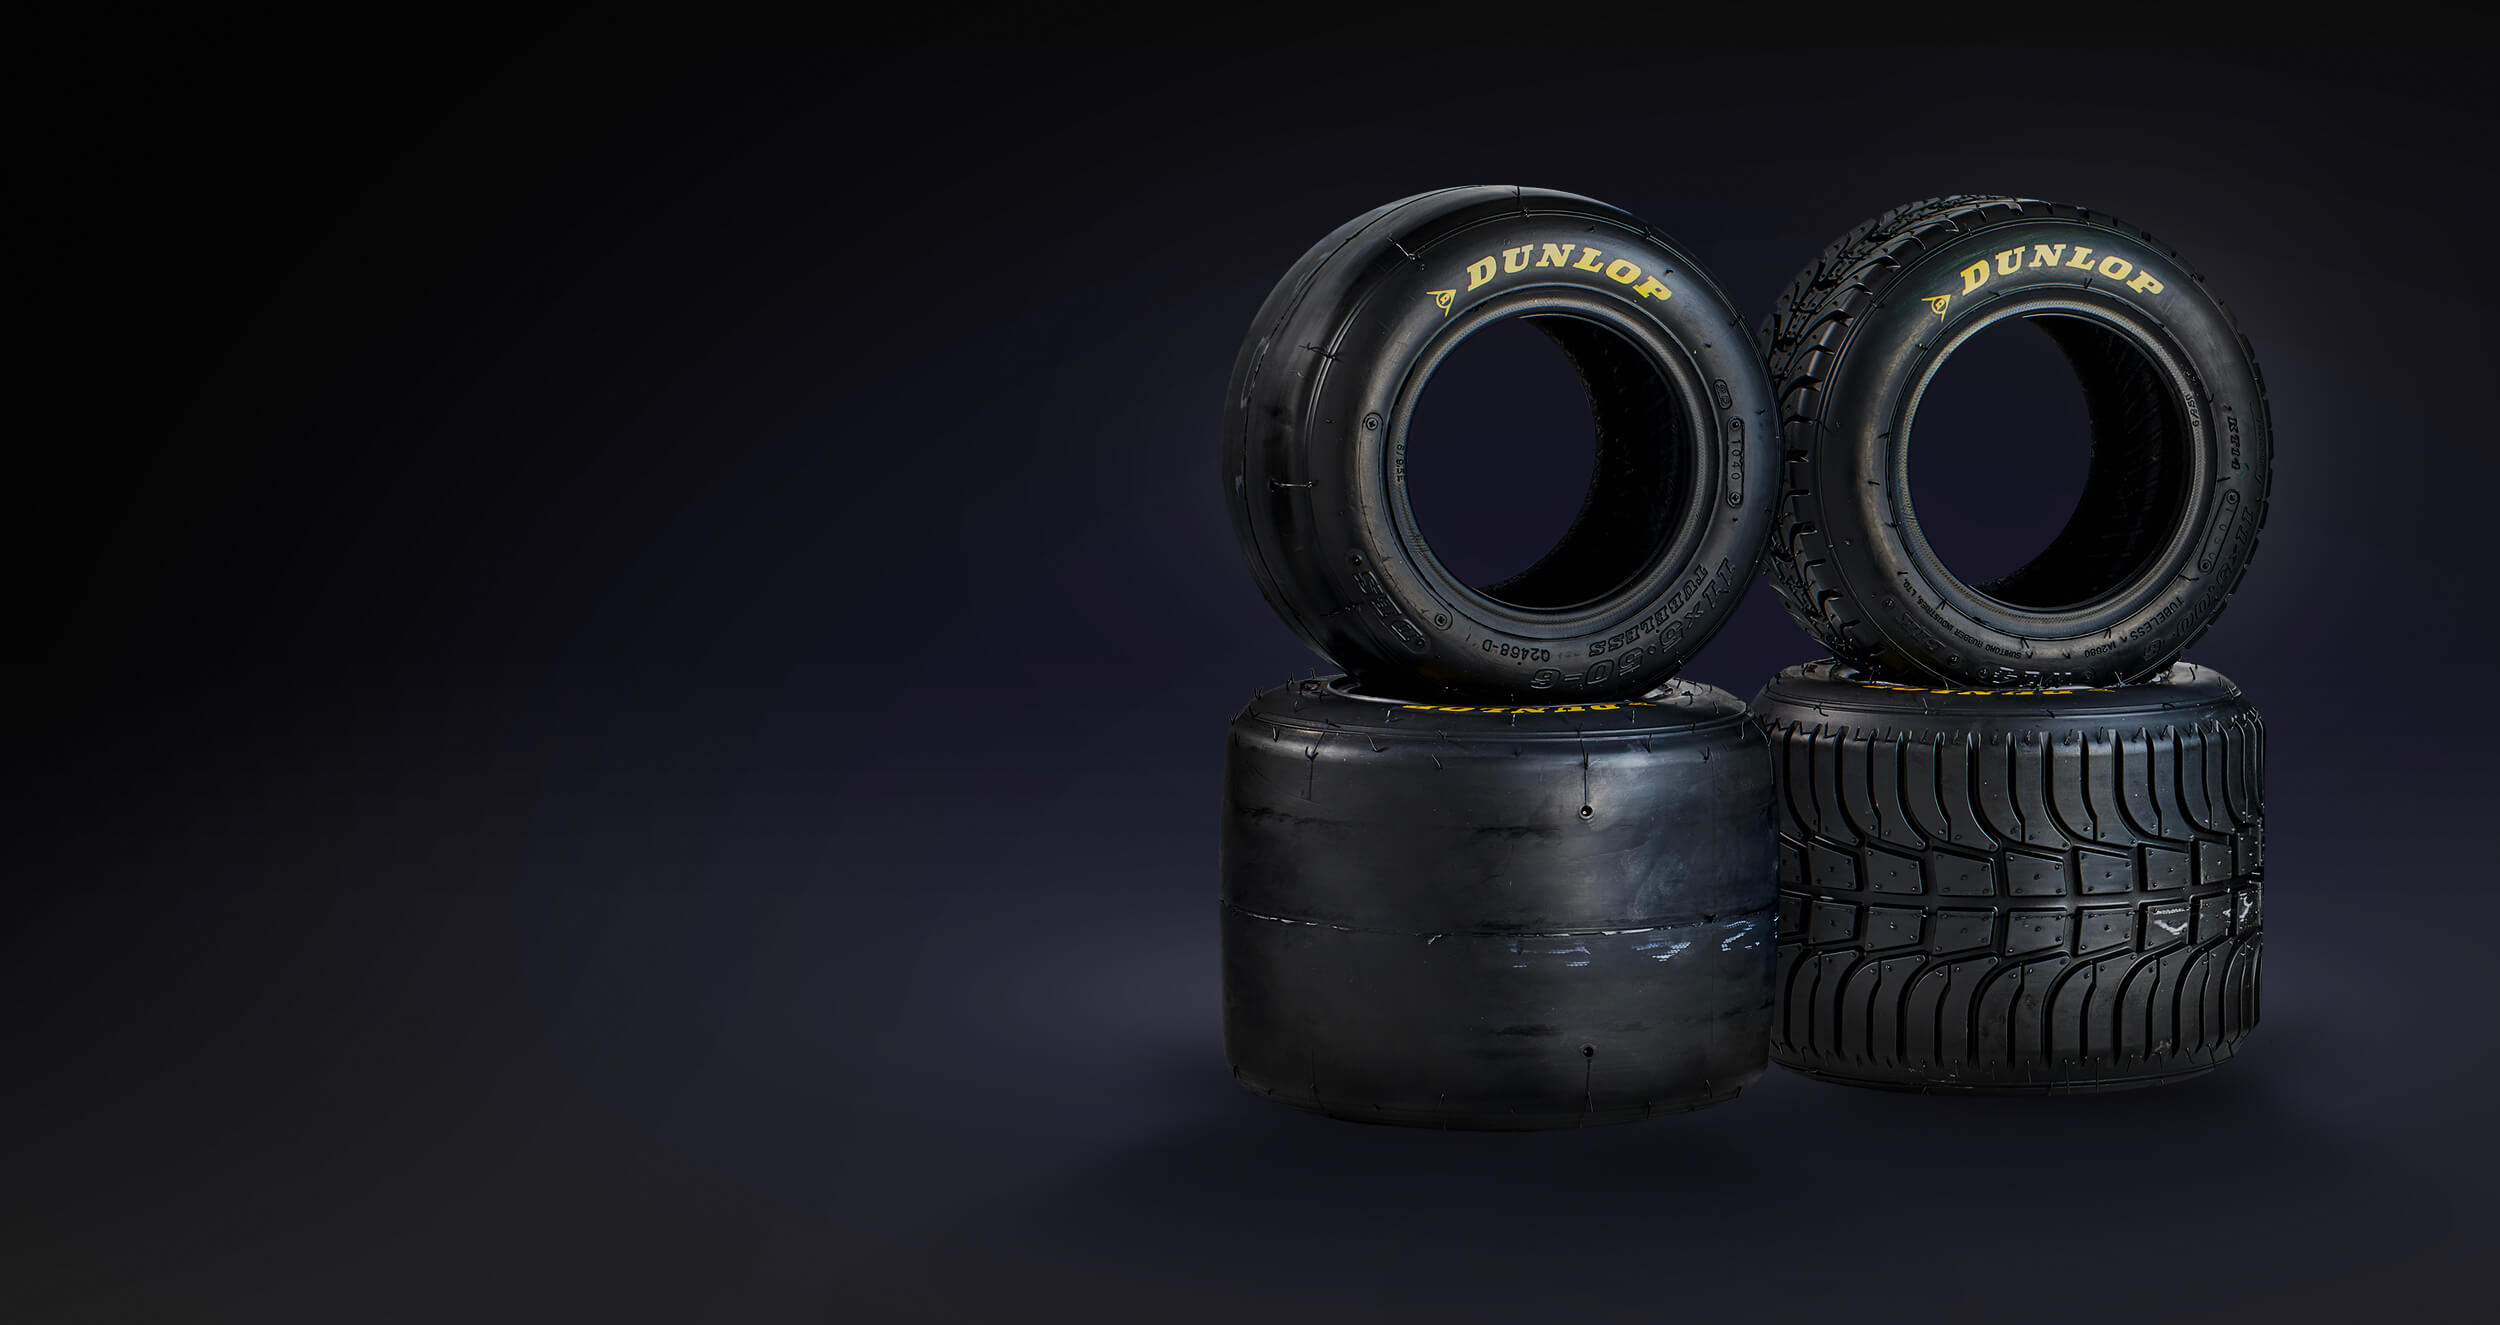 We stock Dunlop Kartsport tyres here at Anderson Karts in our Tyre Shop